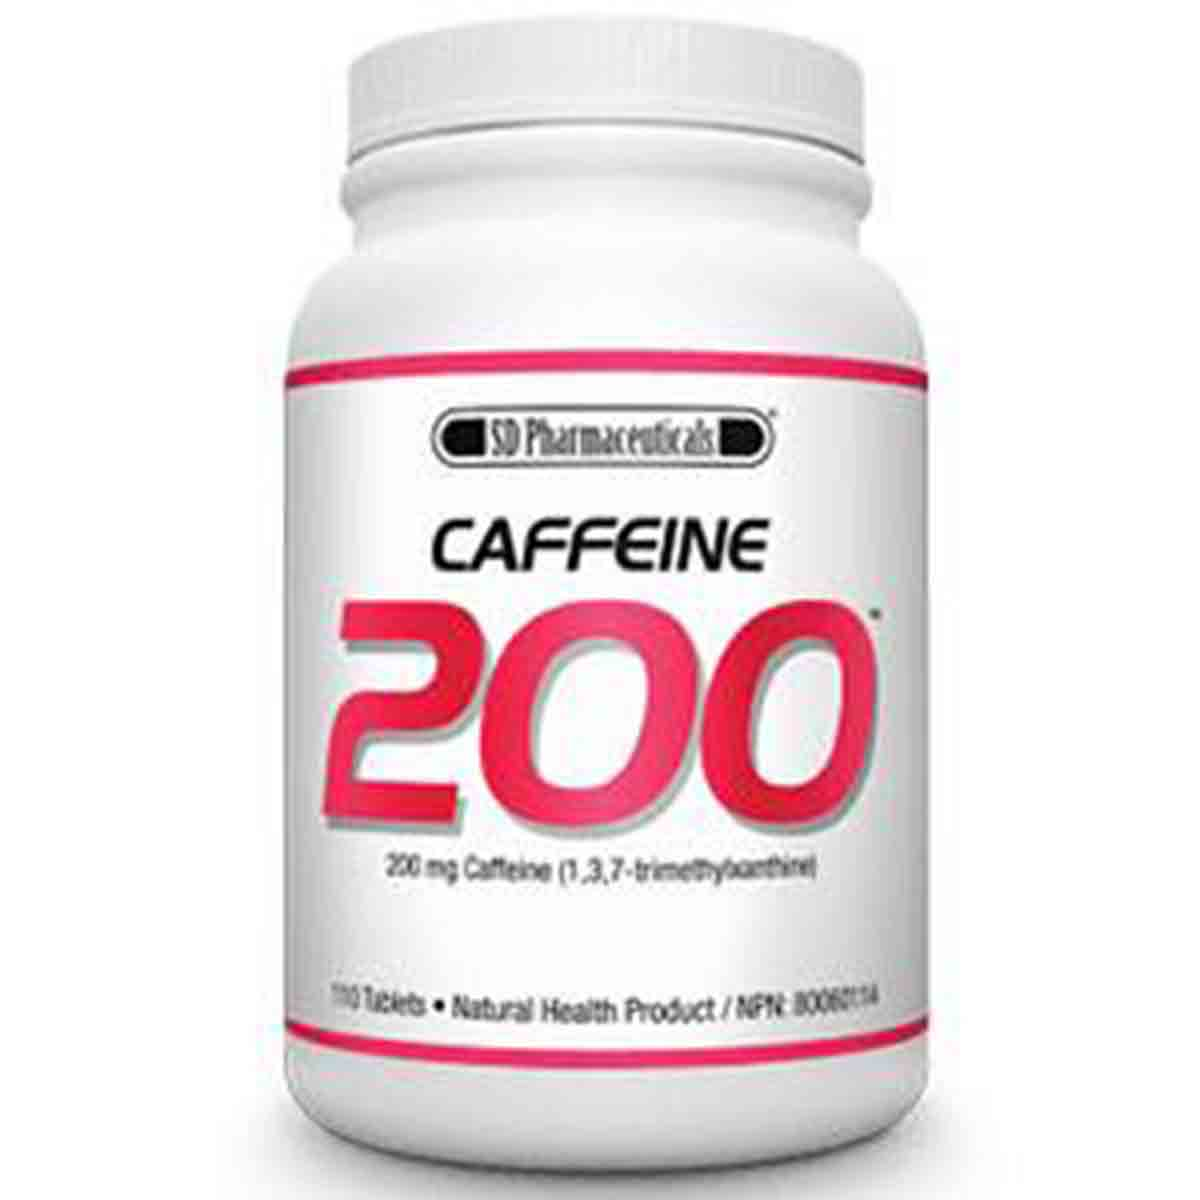 SD Pharmaceuticals Caffeine 200